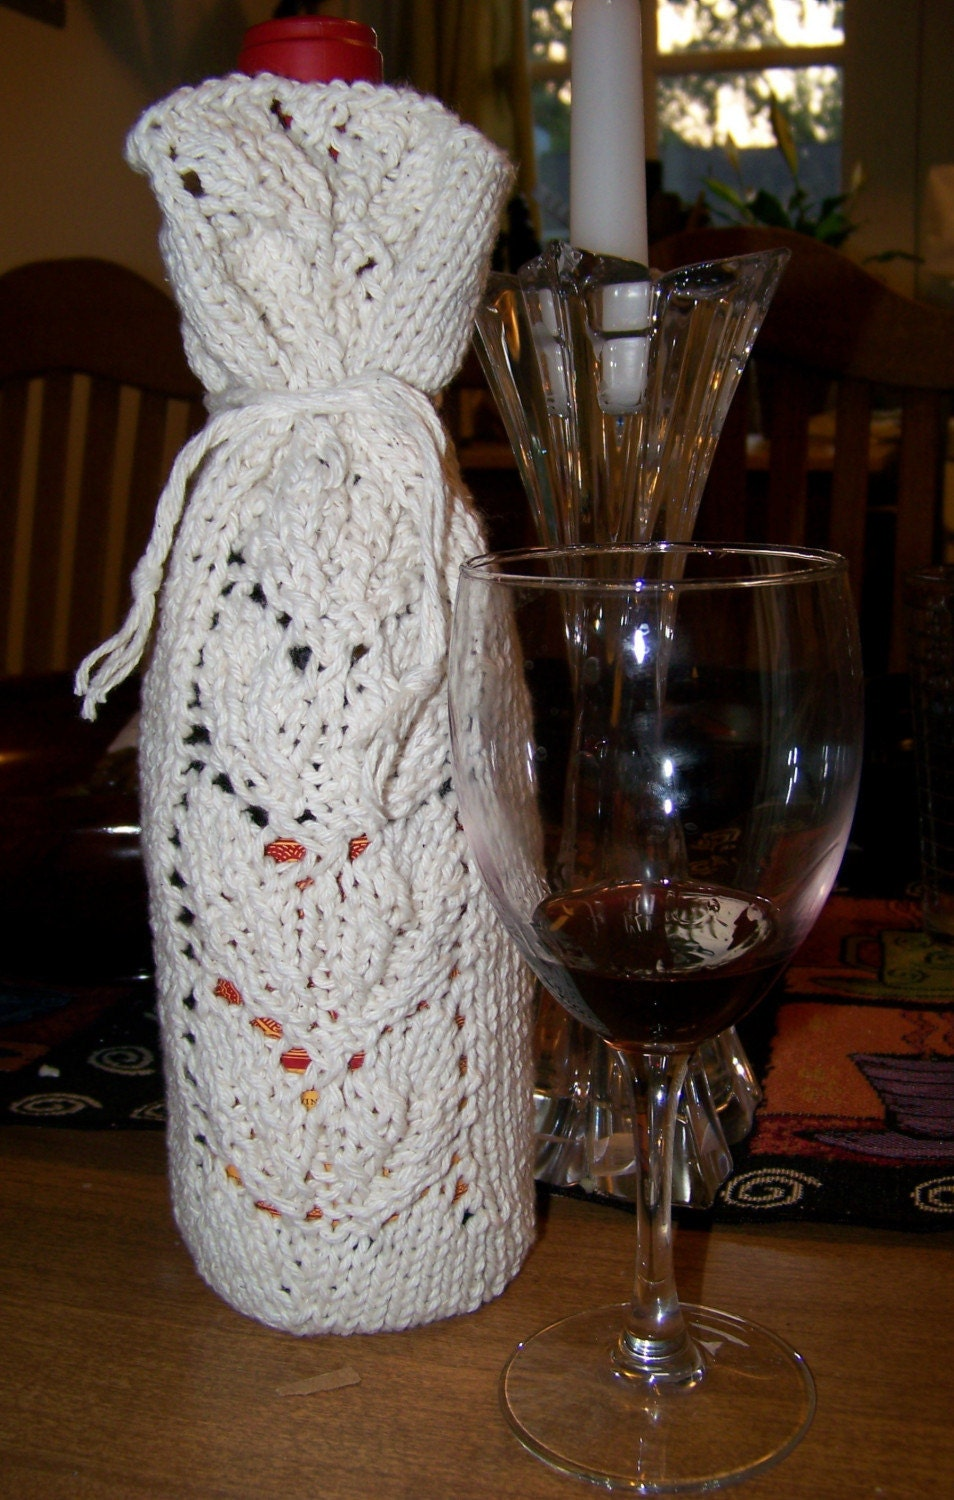 Items similar to Knitted Cotton Wine Bottle Gift Bag / Bottle Cozy on Etsy